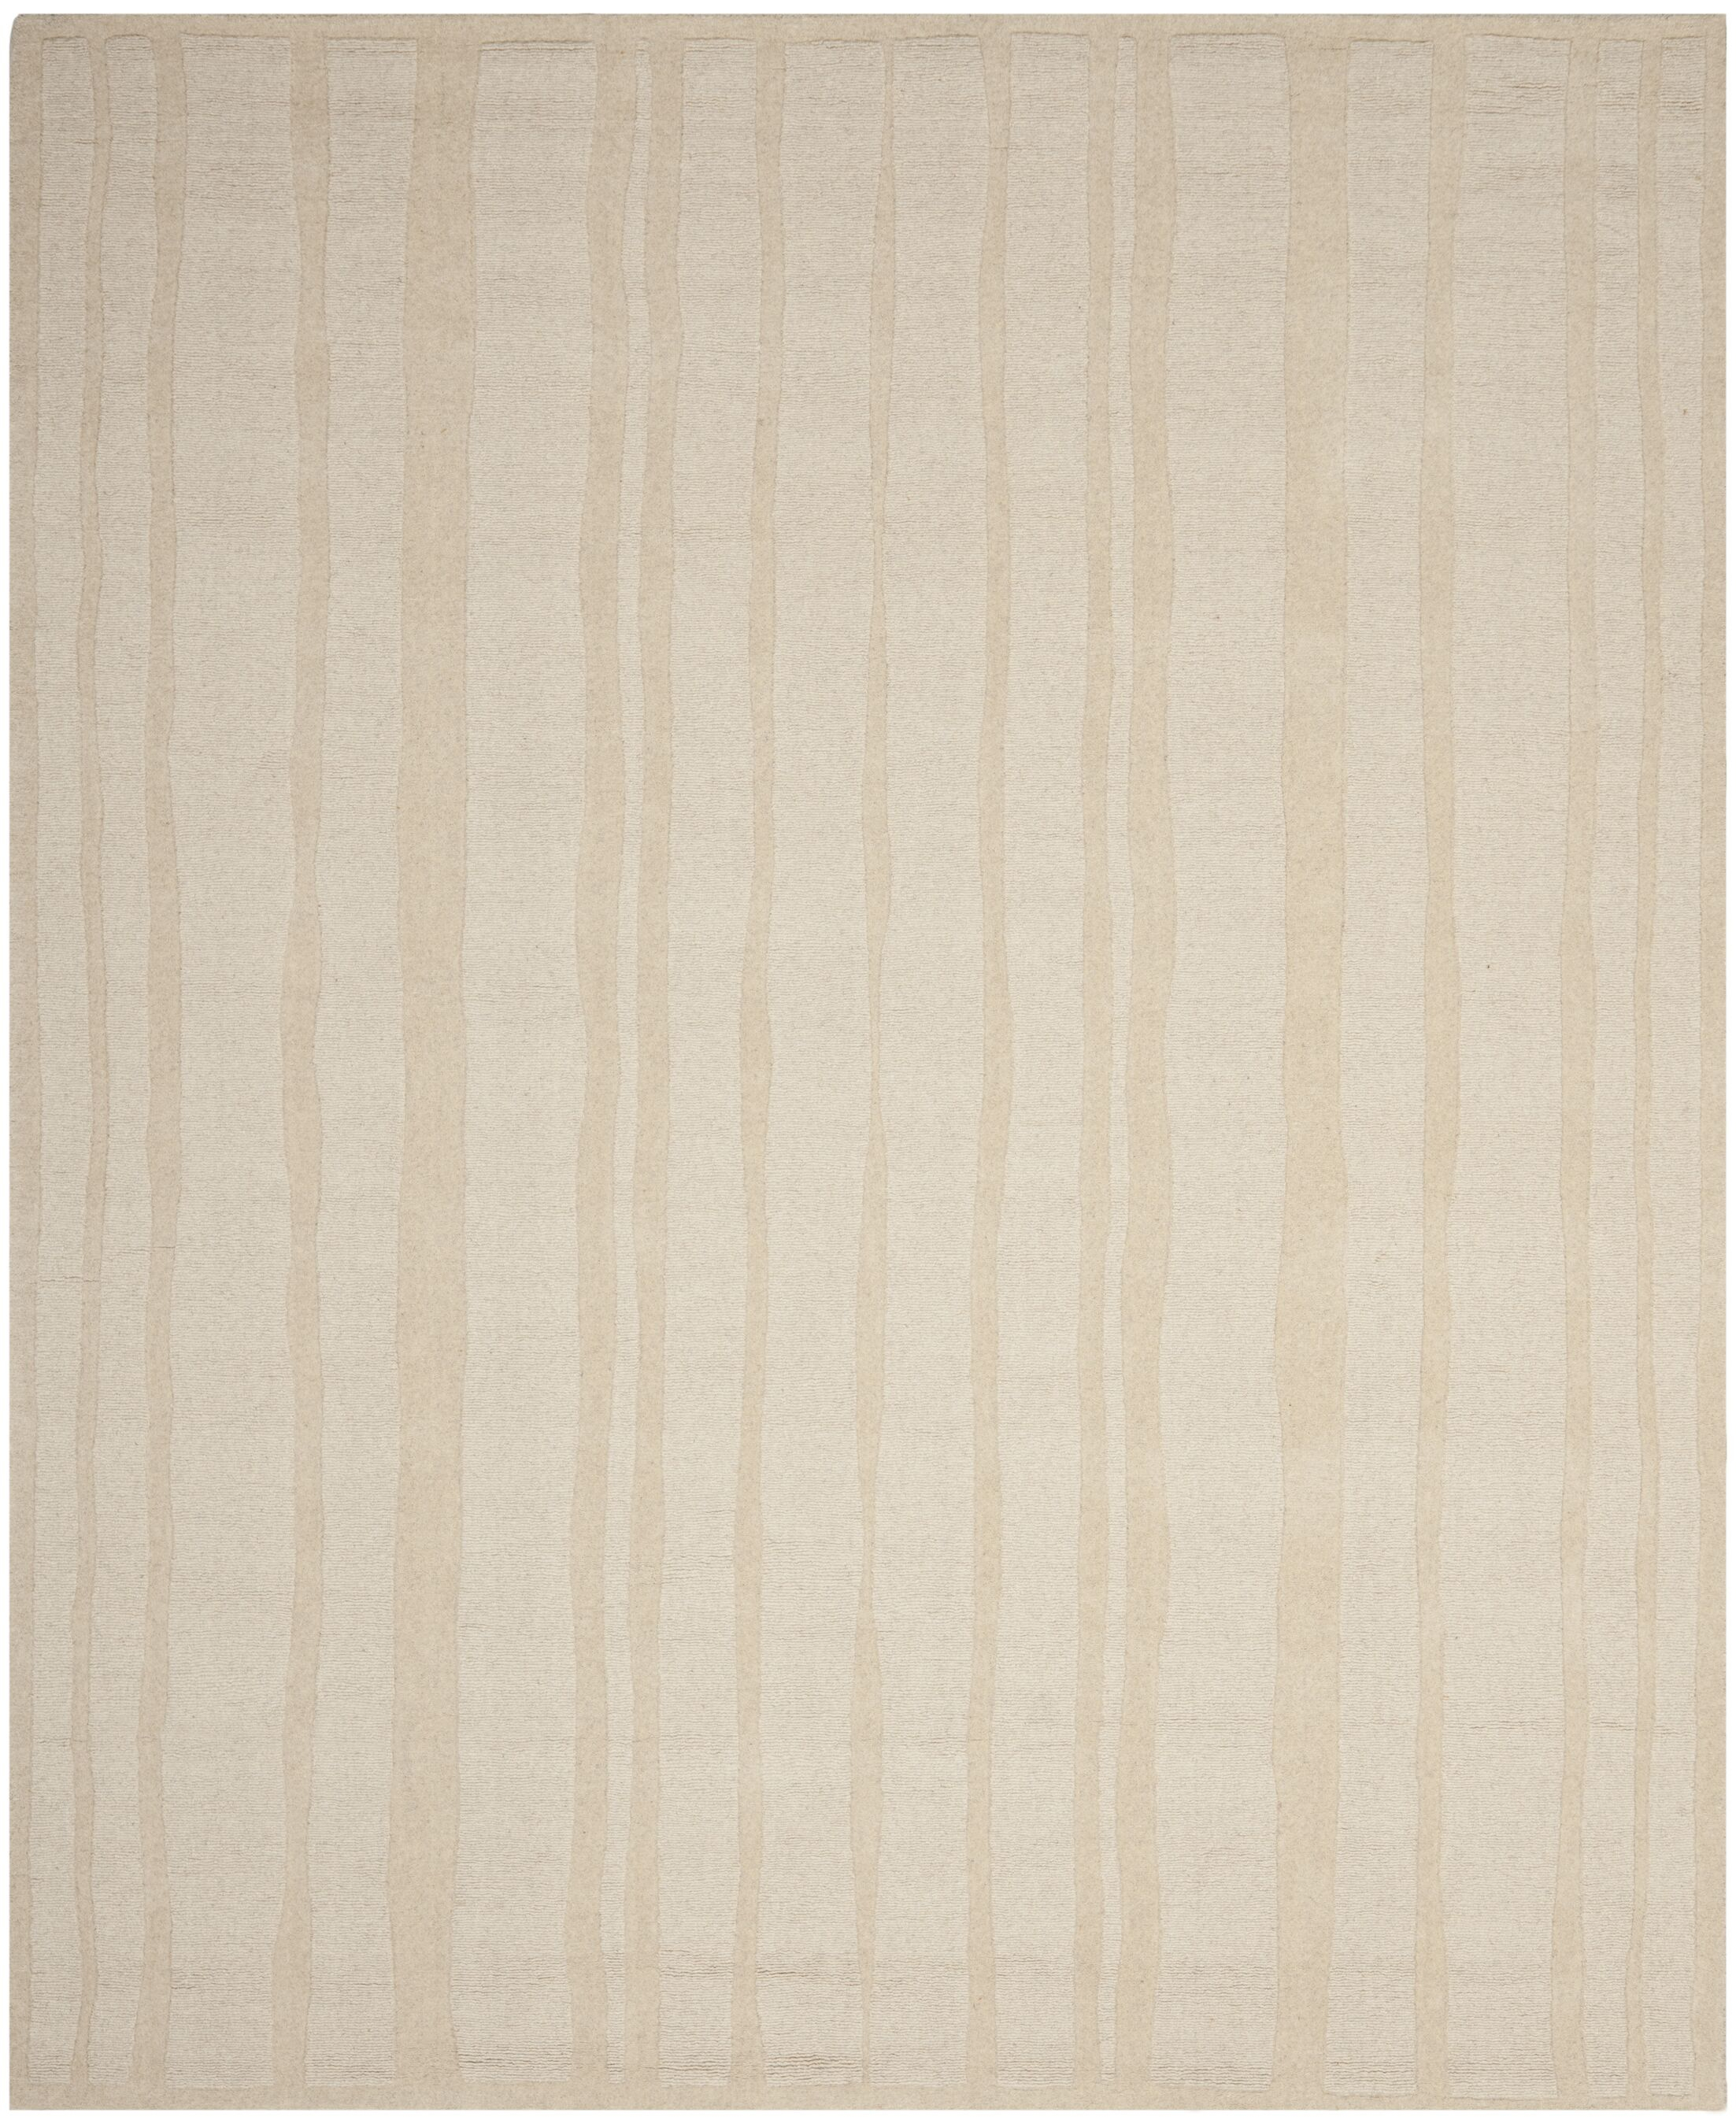 Freehand Stripe Hand-Loomed Mossy Rock Area Rug Rug Size: Rectangle 5' x 8'